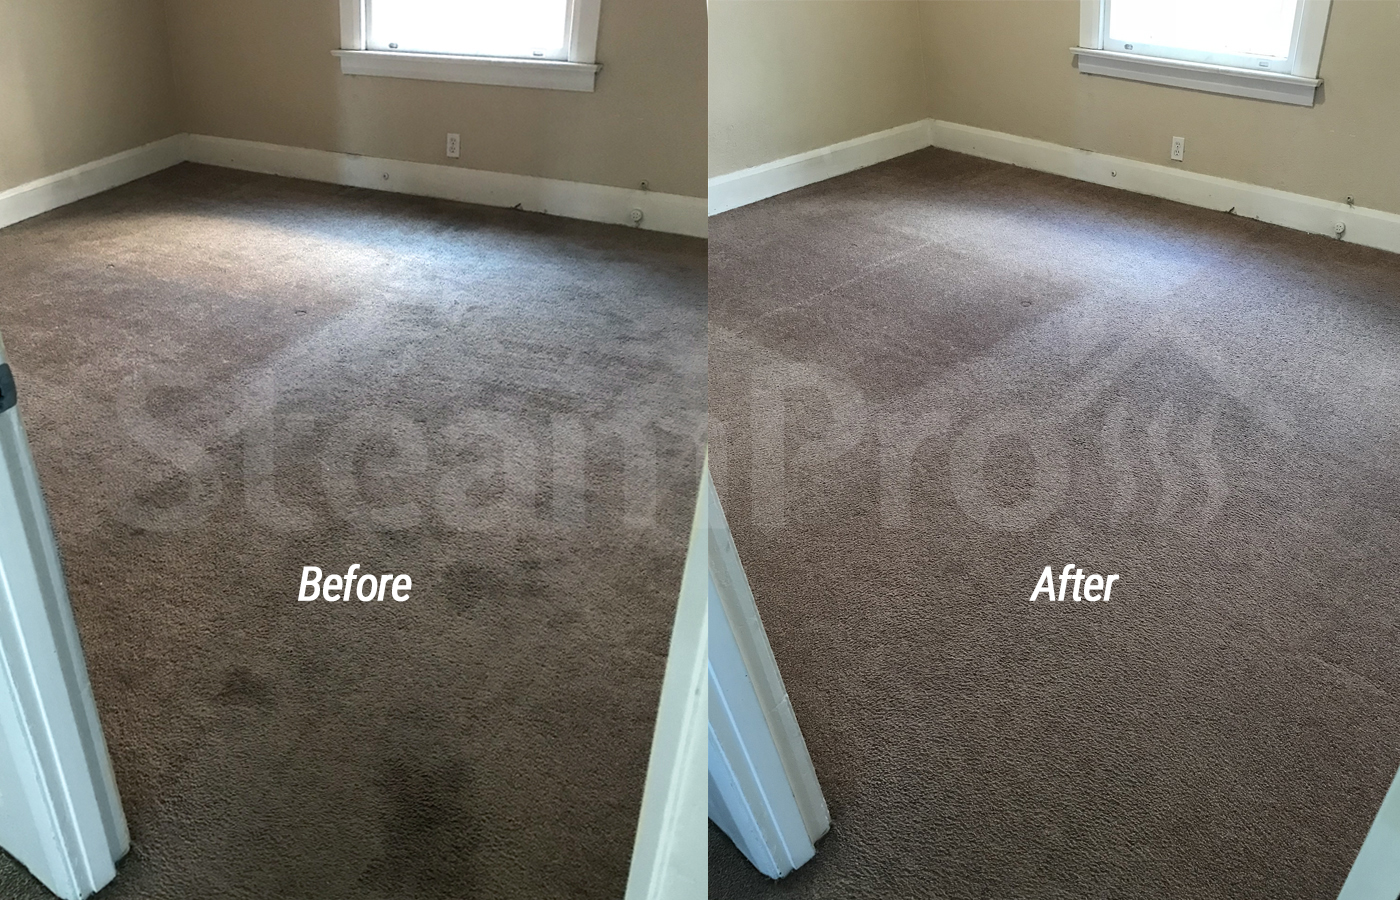 It should then be re-applied by a carpet cleaner after a professional cleaning to prolong the life and 'cleanability' for your carpet.